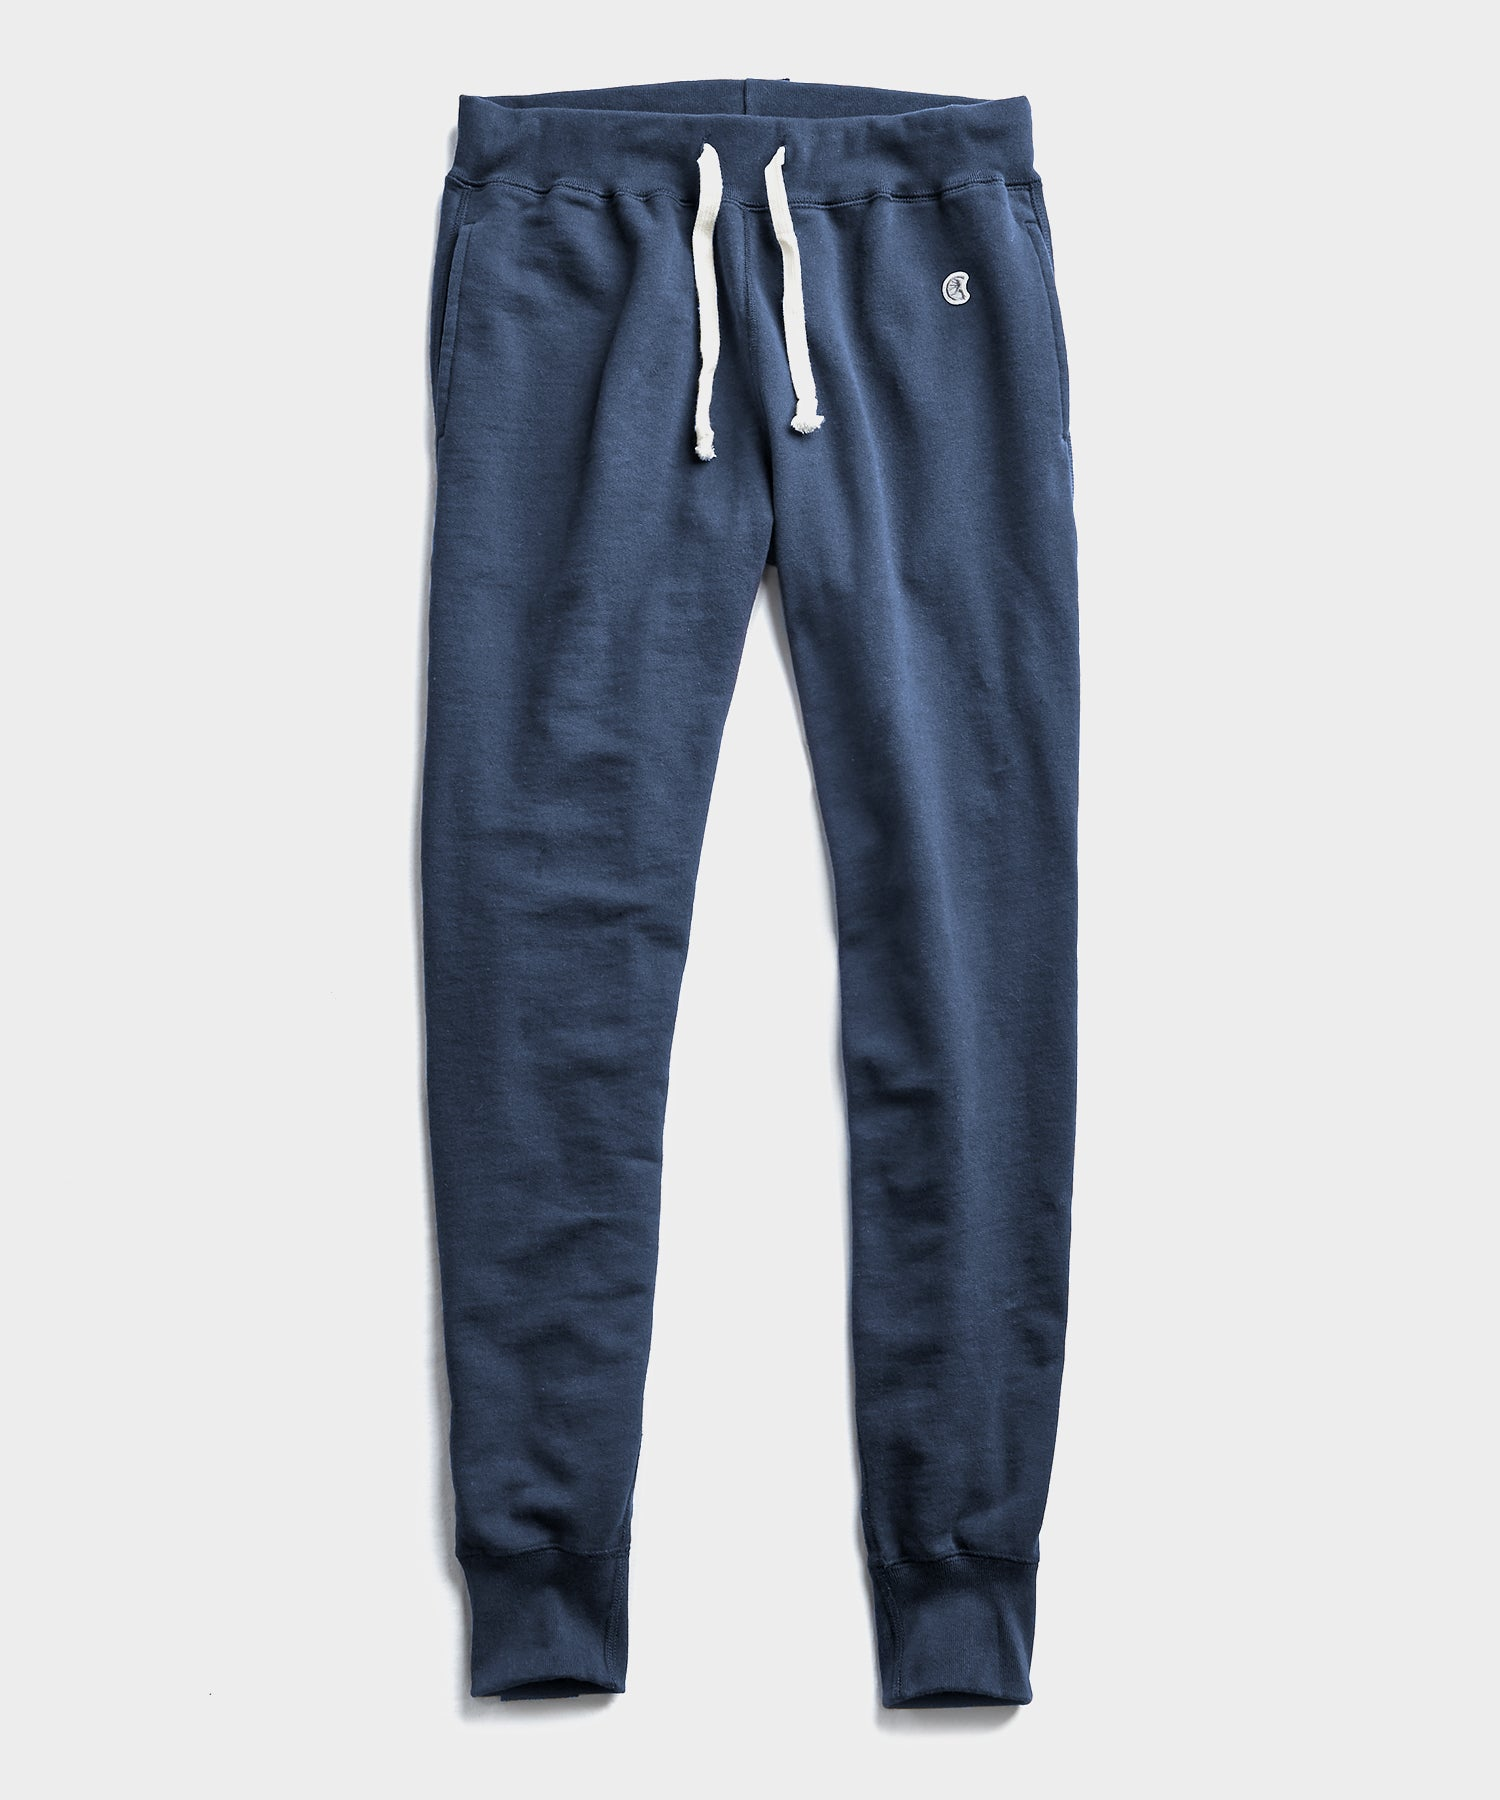 Midweight Slim Jogger Sweatpant in Hale Navy